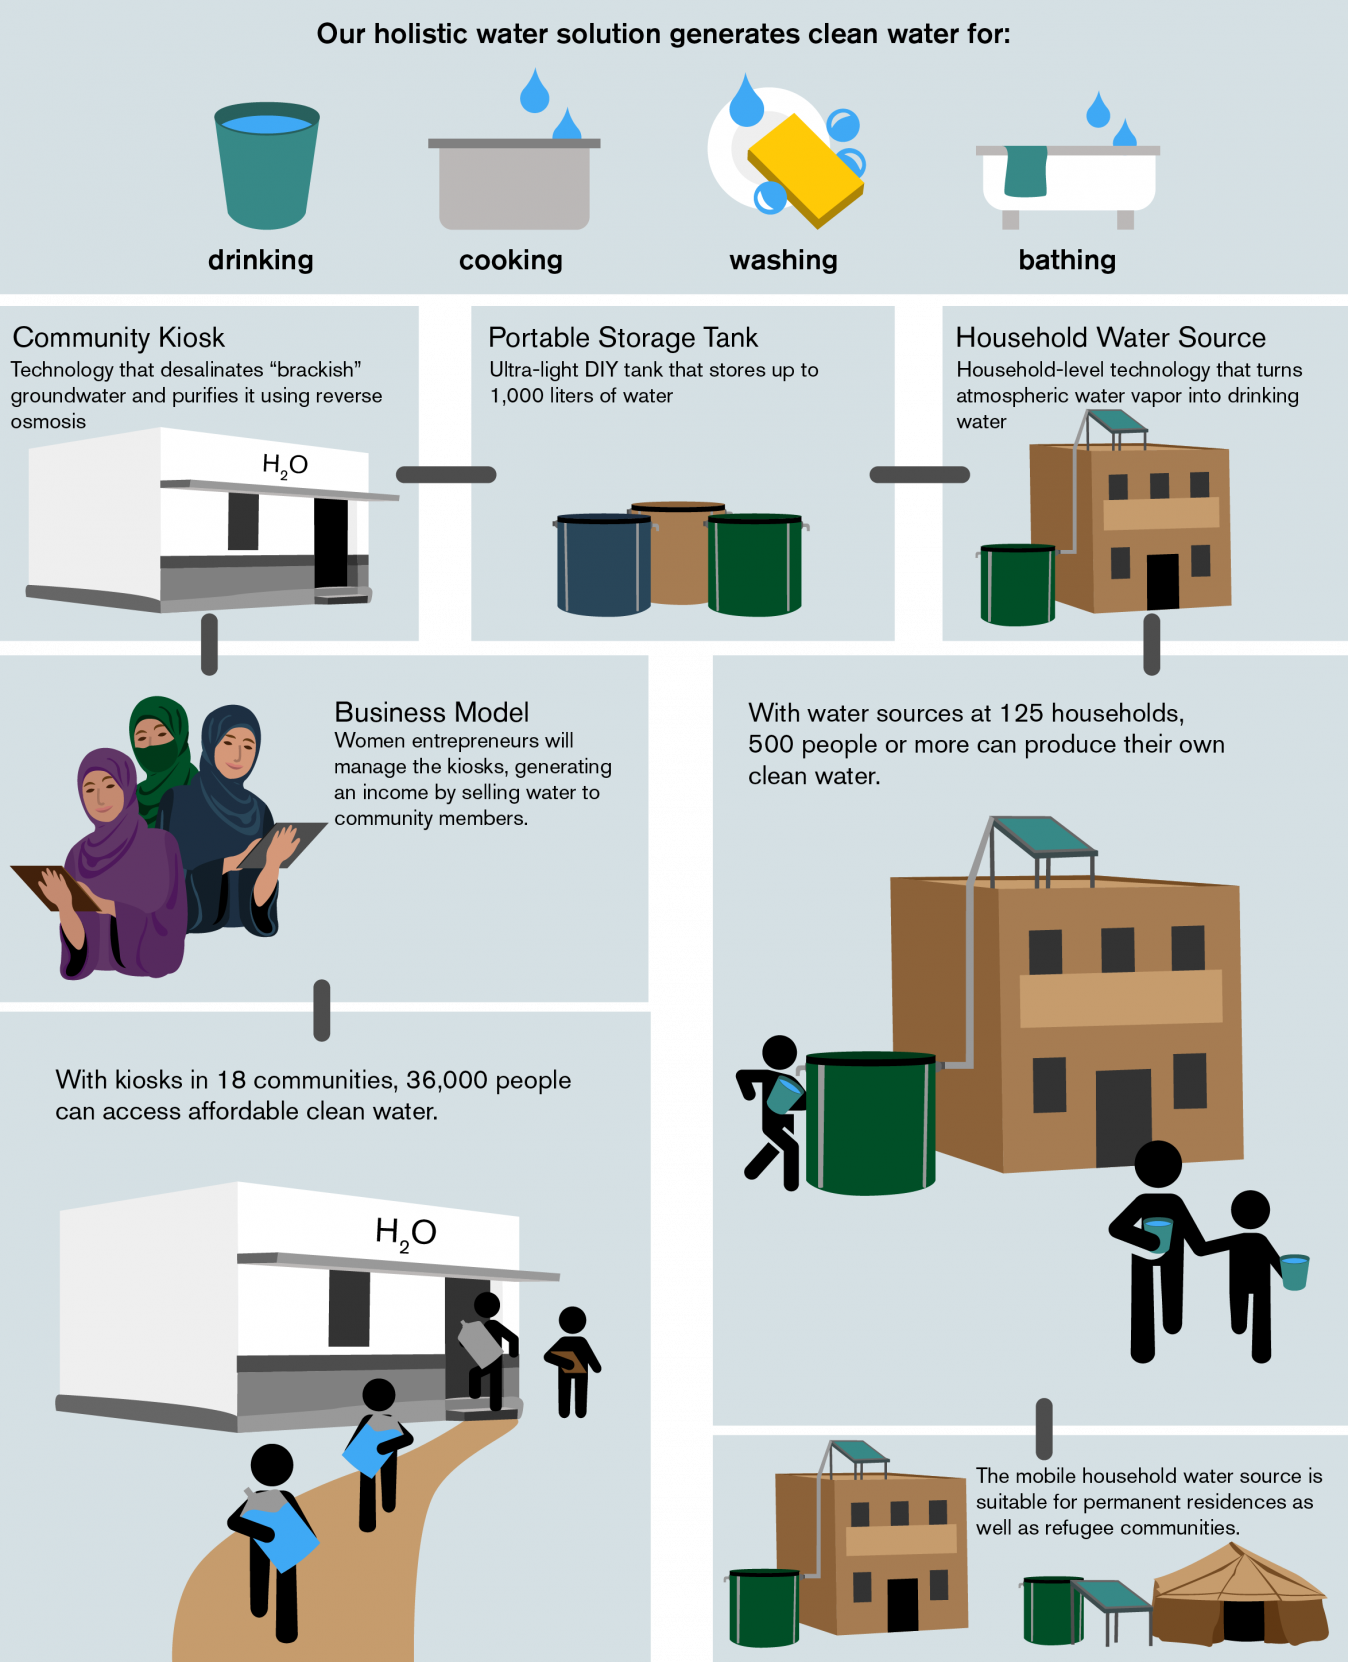 Information graphic depicting the impact of the Holistic Water Solutions on underserved and refugee communities